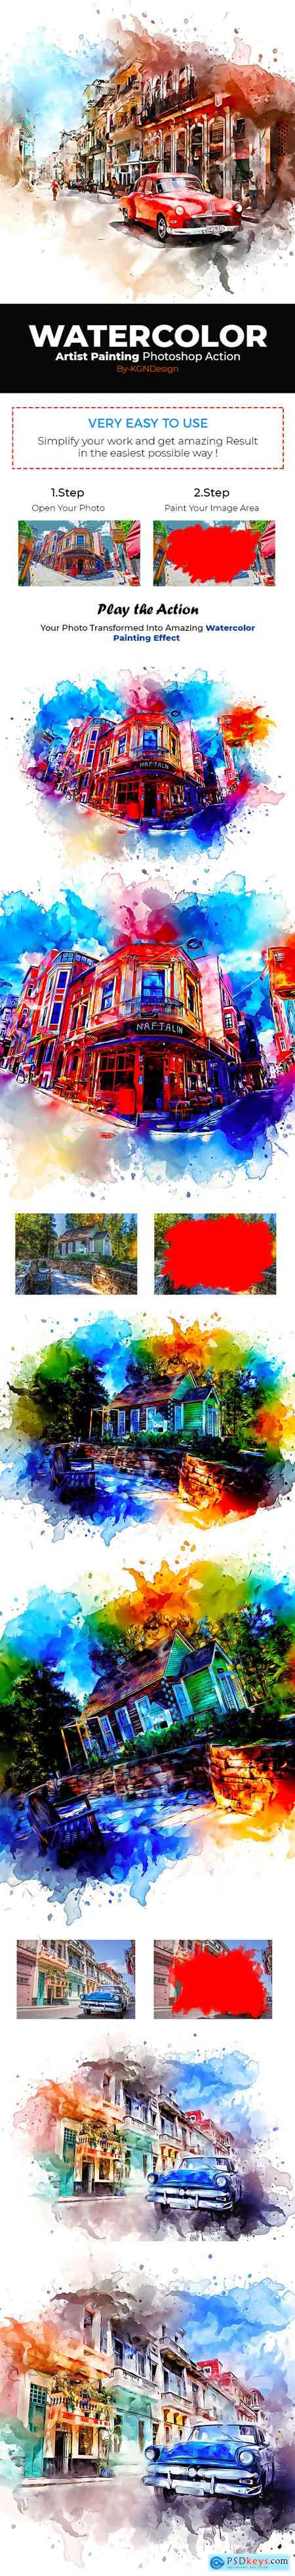 Graphicriver Watercolor Artist Painting Photoshop Action